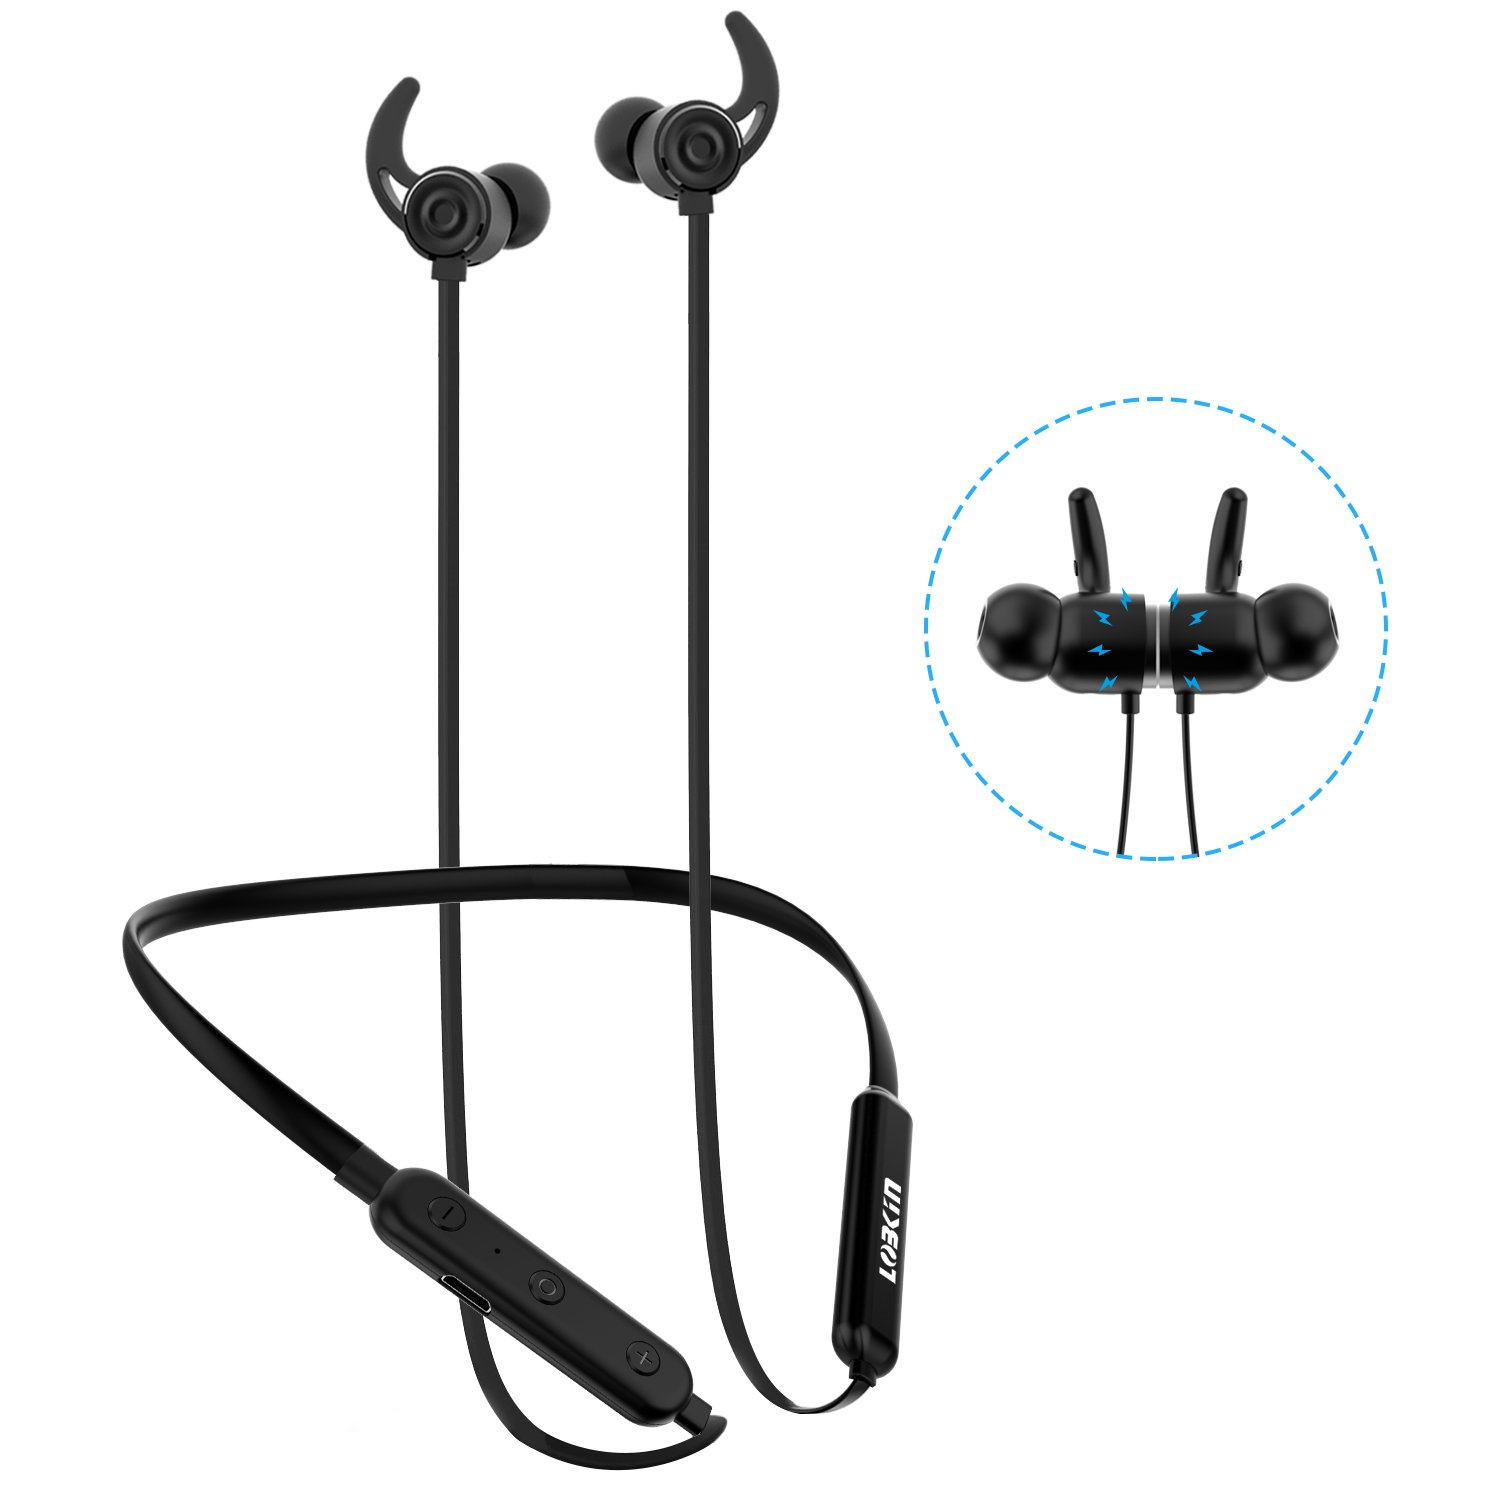 Lobkin Wireless Bluetooth Headphones Lightweight In-ear Headsets with Microphone IPX6 Sweatproof Magnetic Sport Earphones for iphone Android 8 Hours Hi-quality Music Built-in cVc 6.0 Bluetooth 4.2